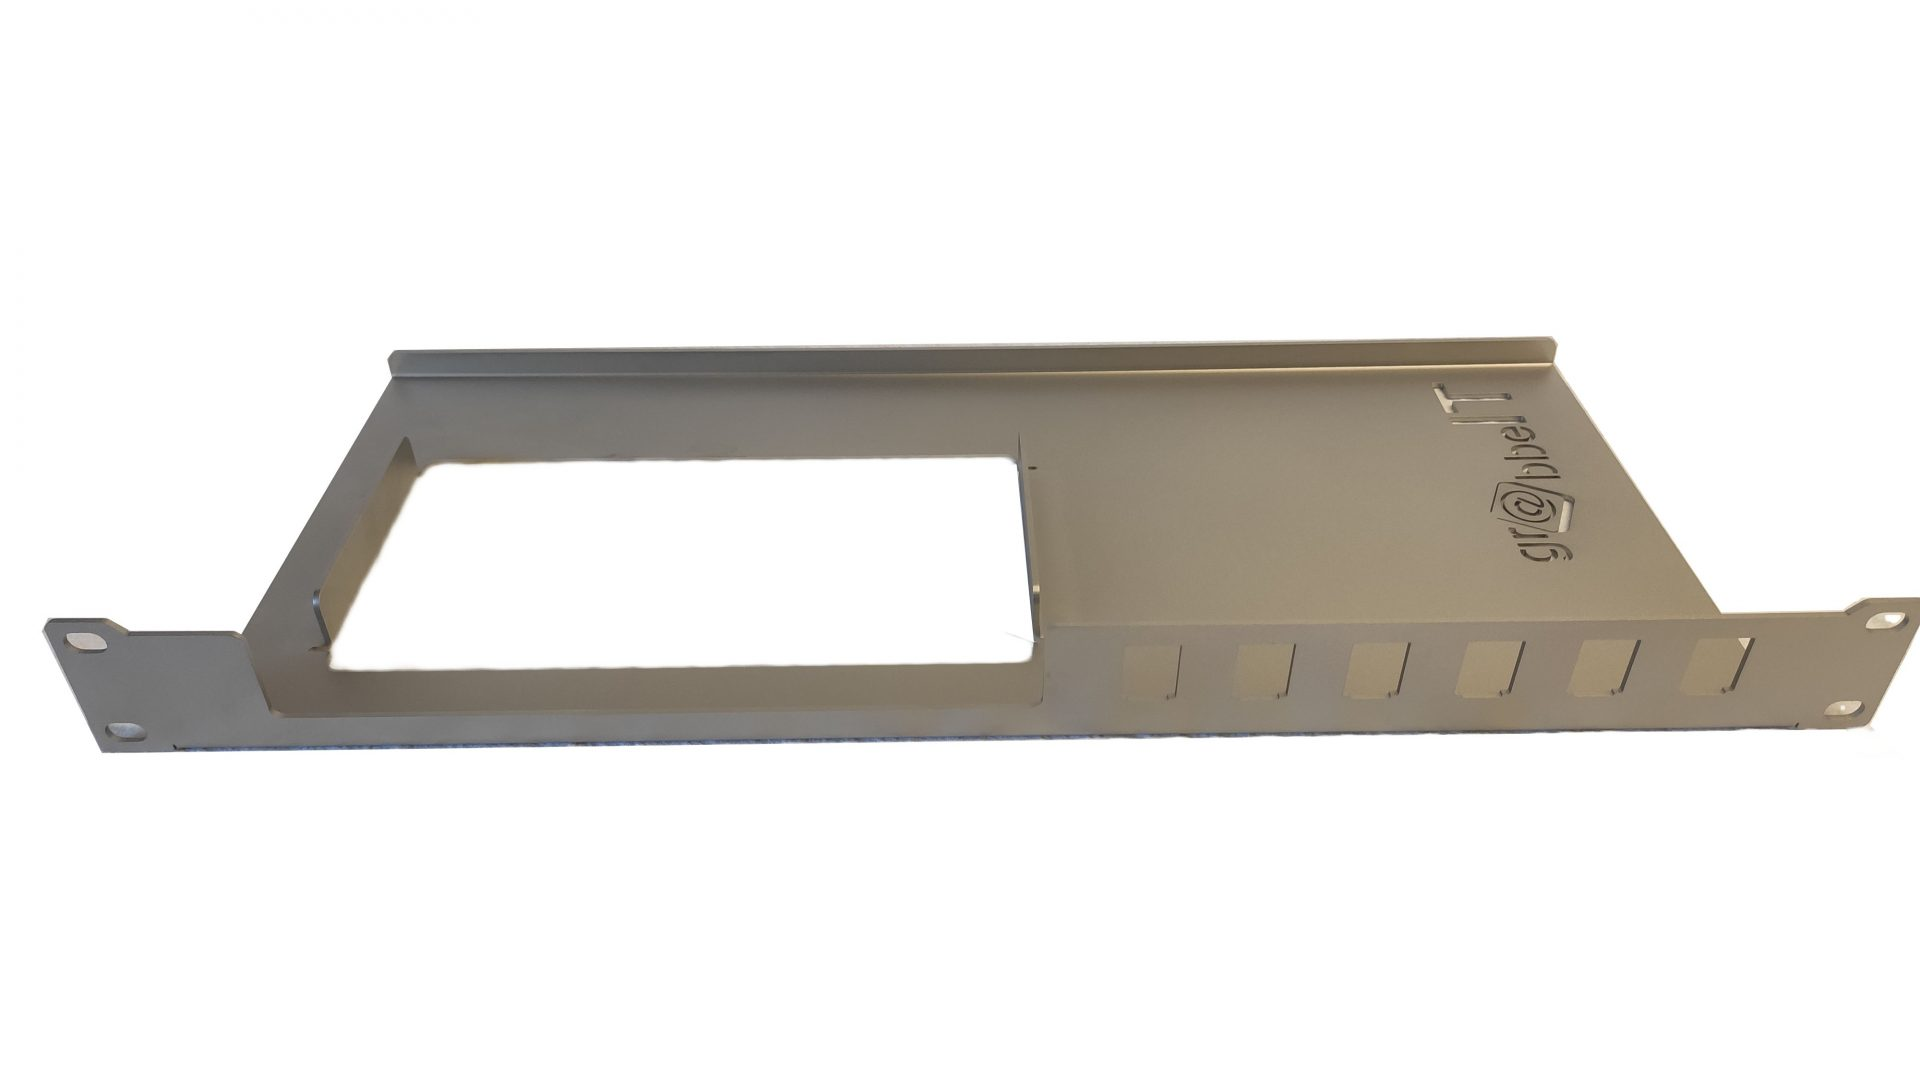 Fritzbox-Cable-Rack 6591